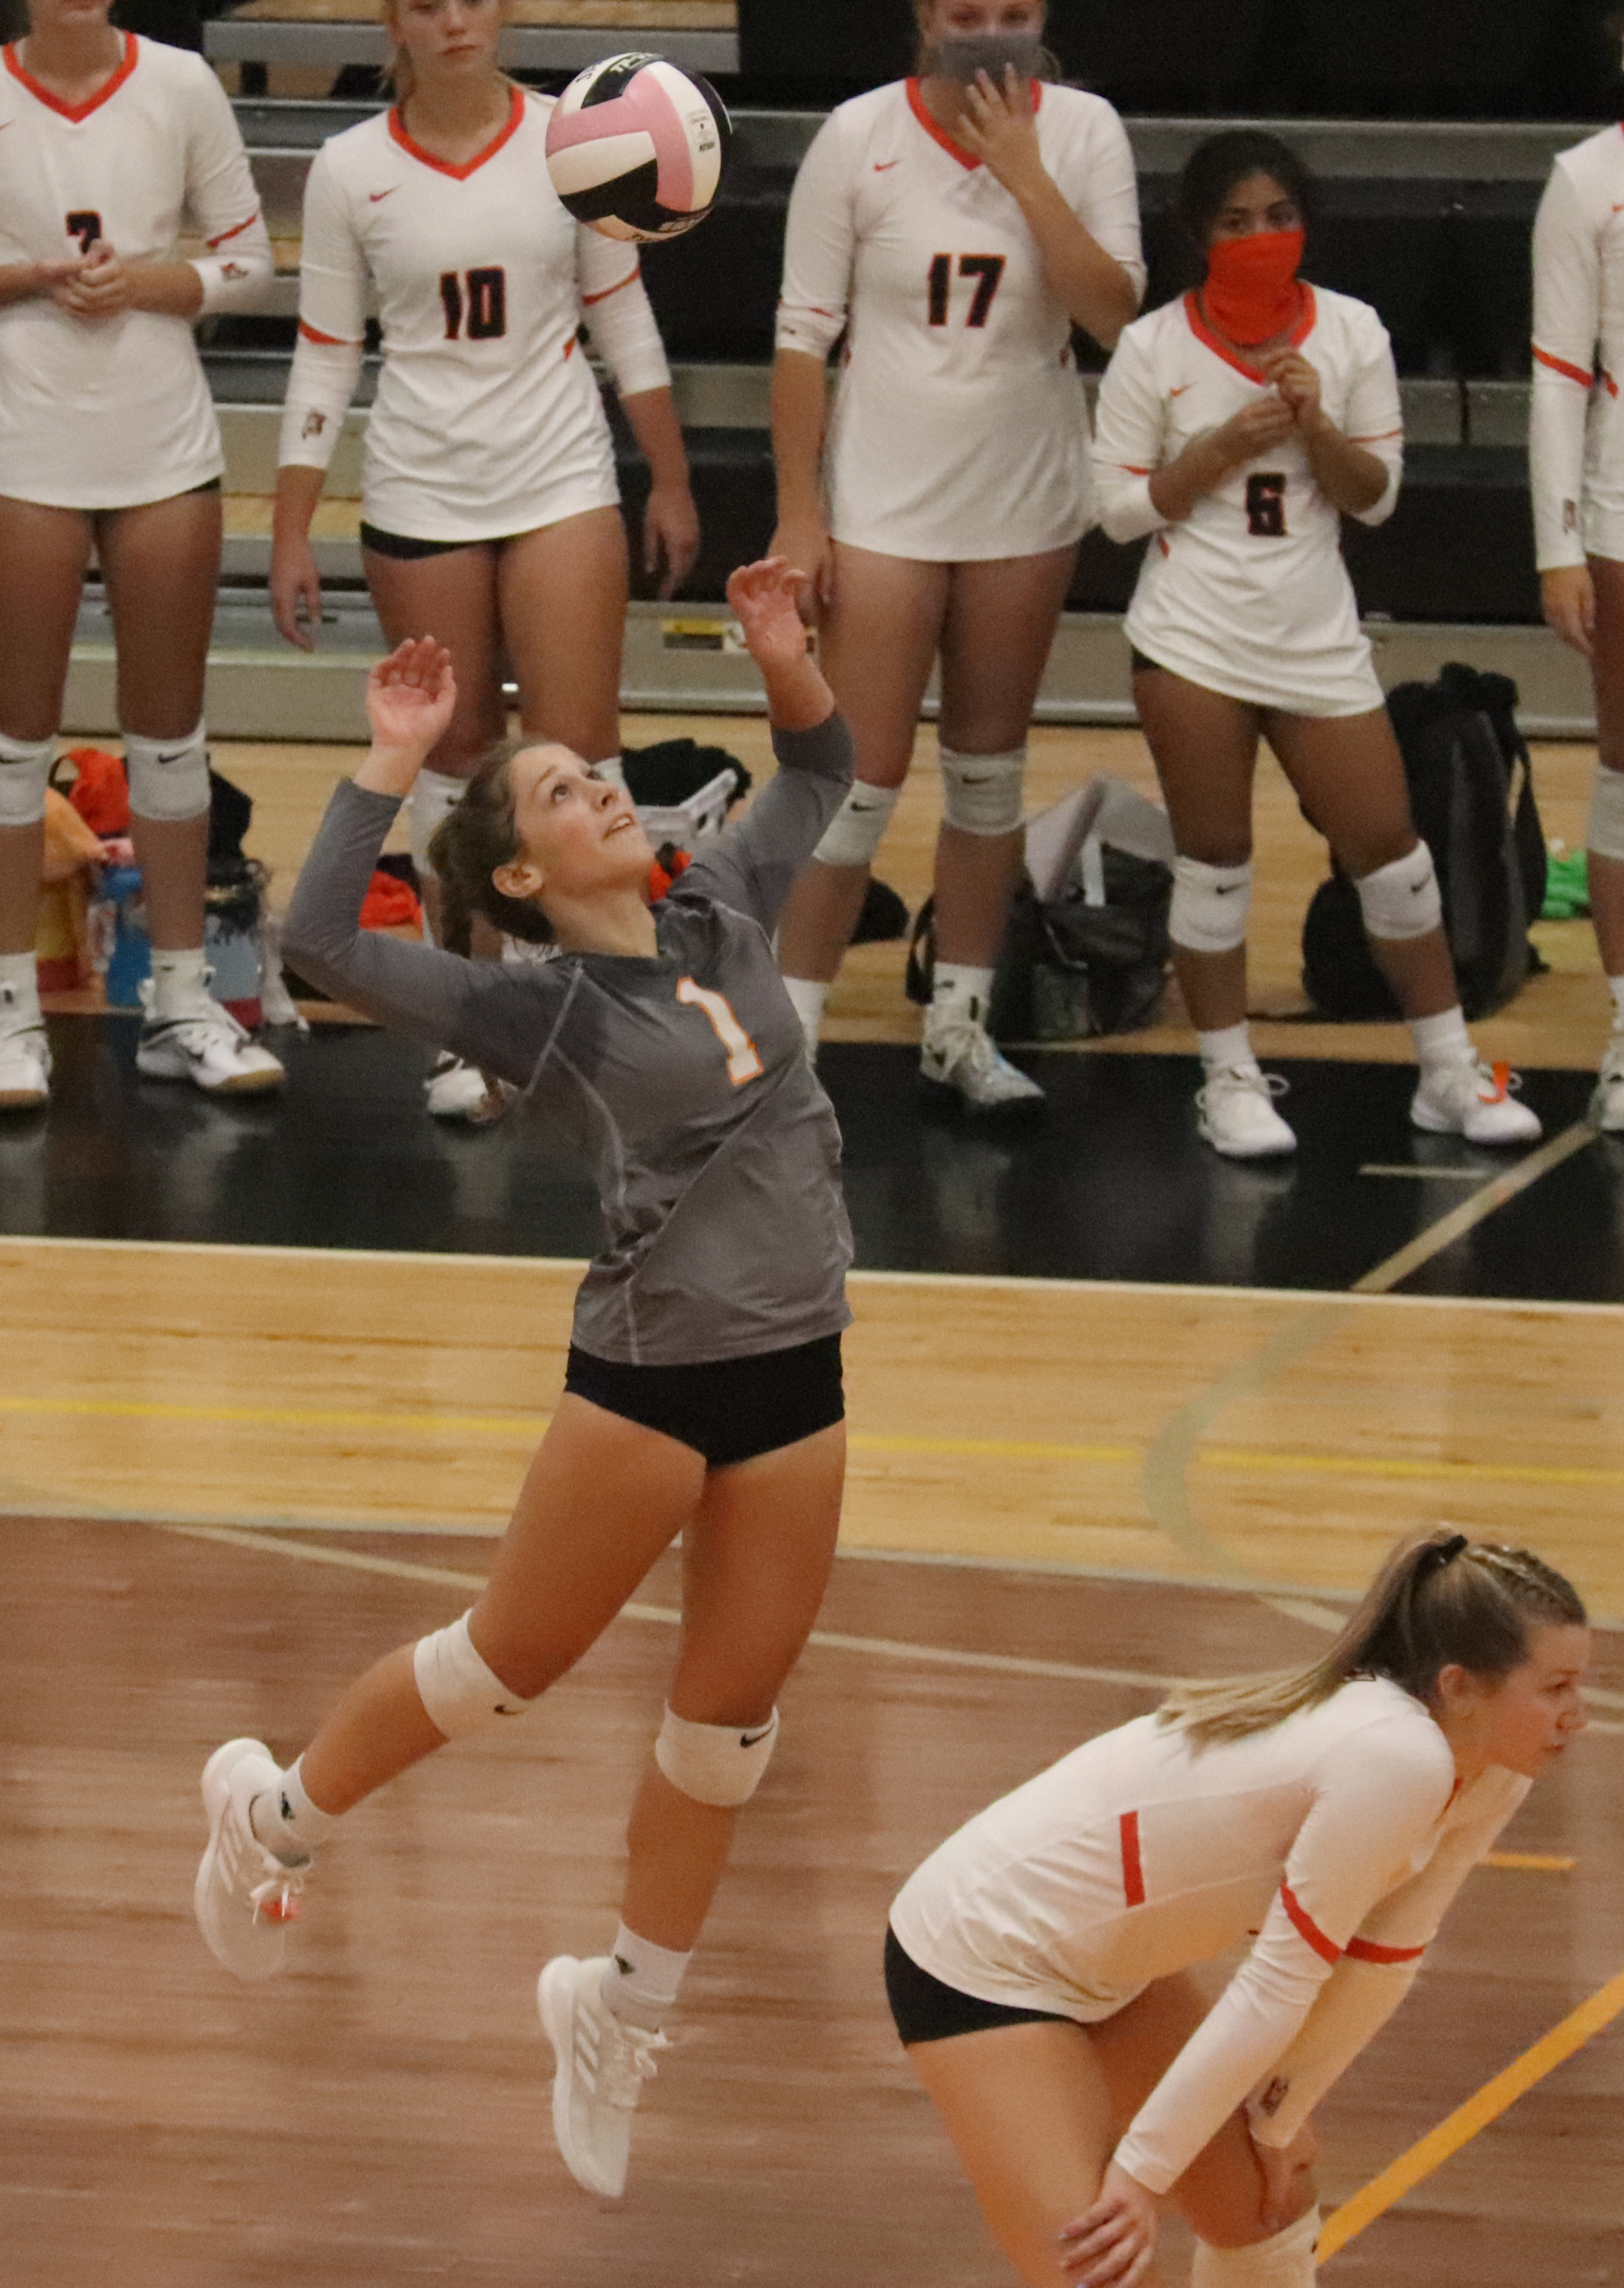 Toni Maloy named to All-Northeast Iowa Conference Volleyball First Team